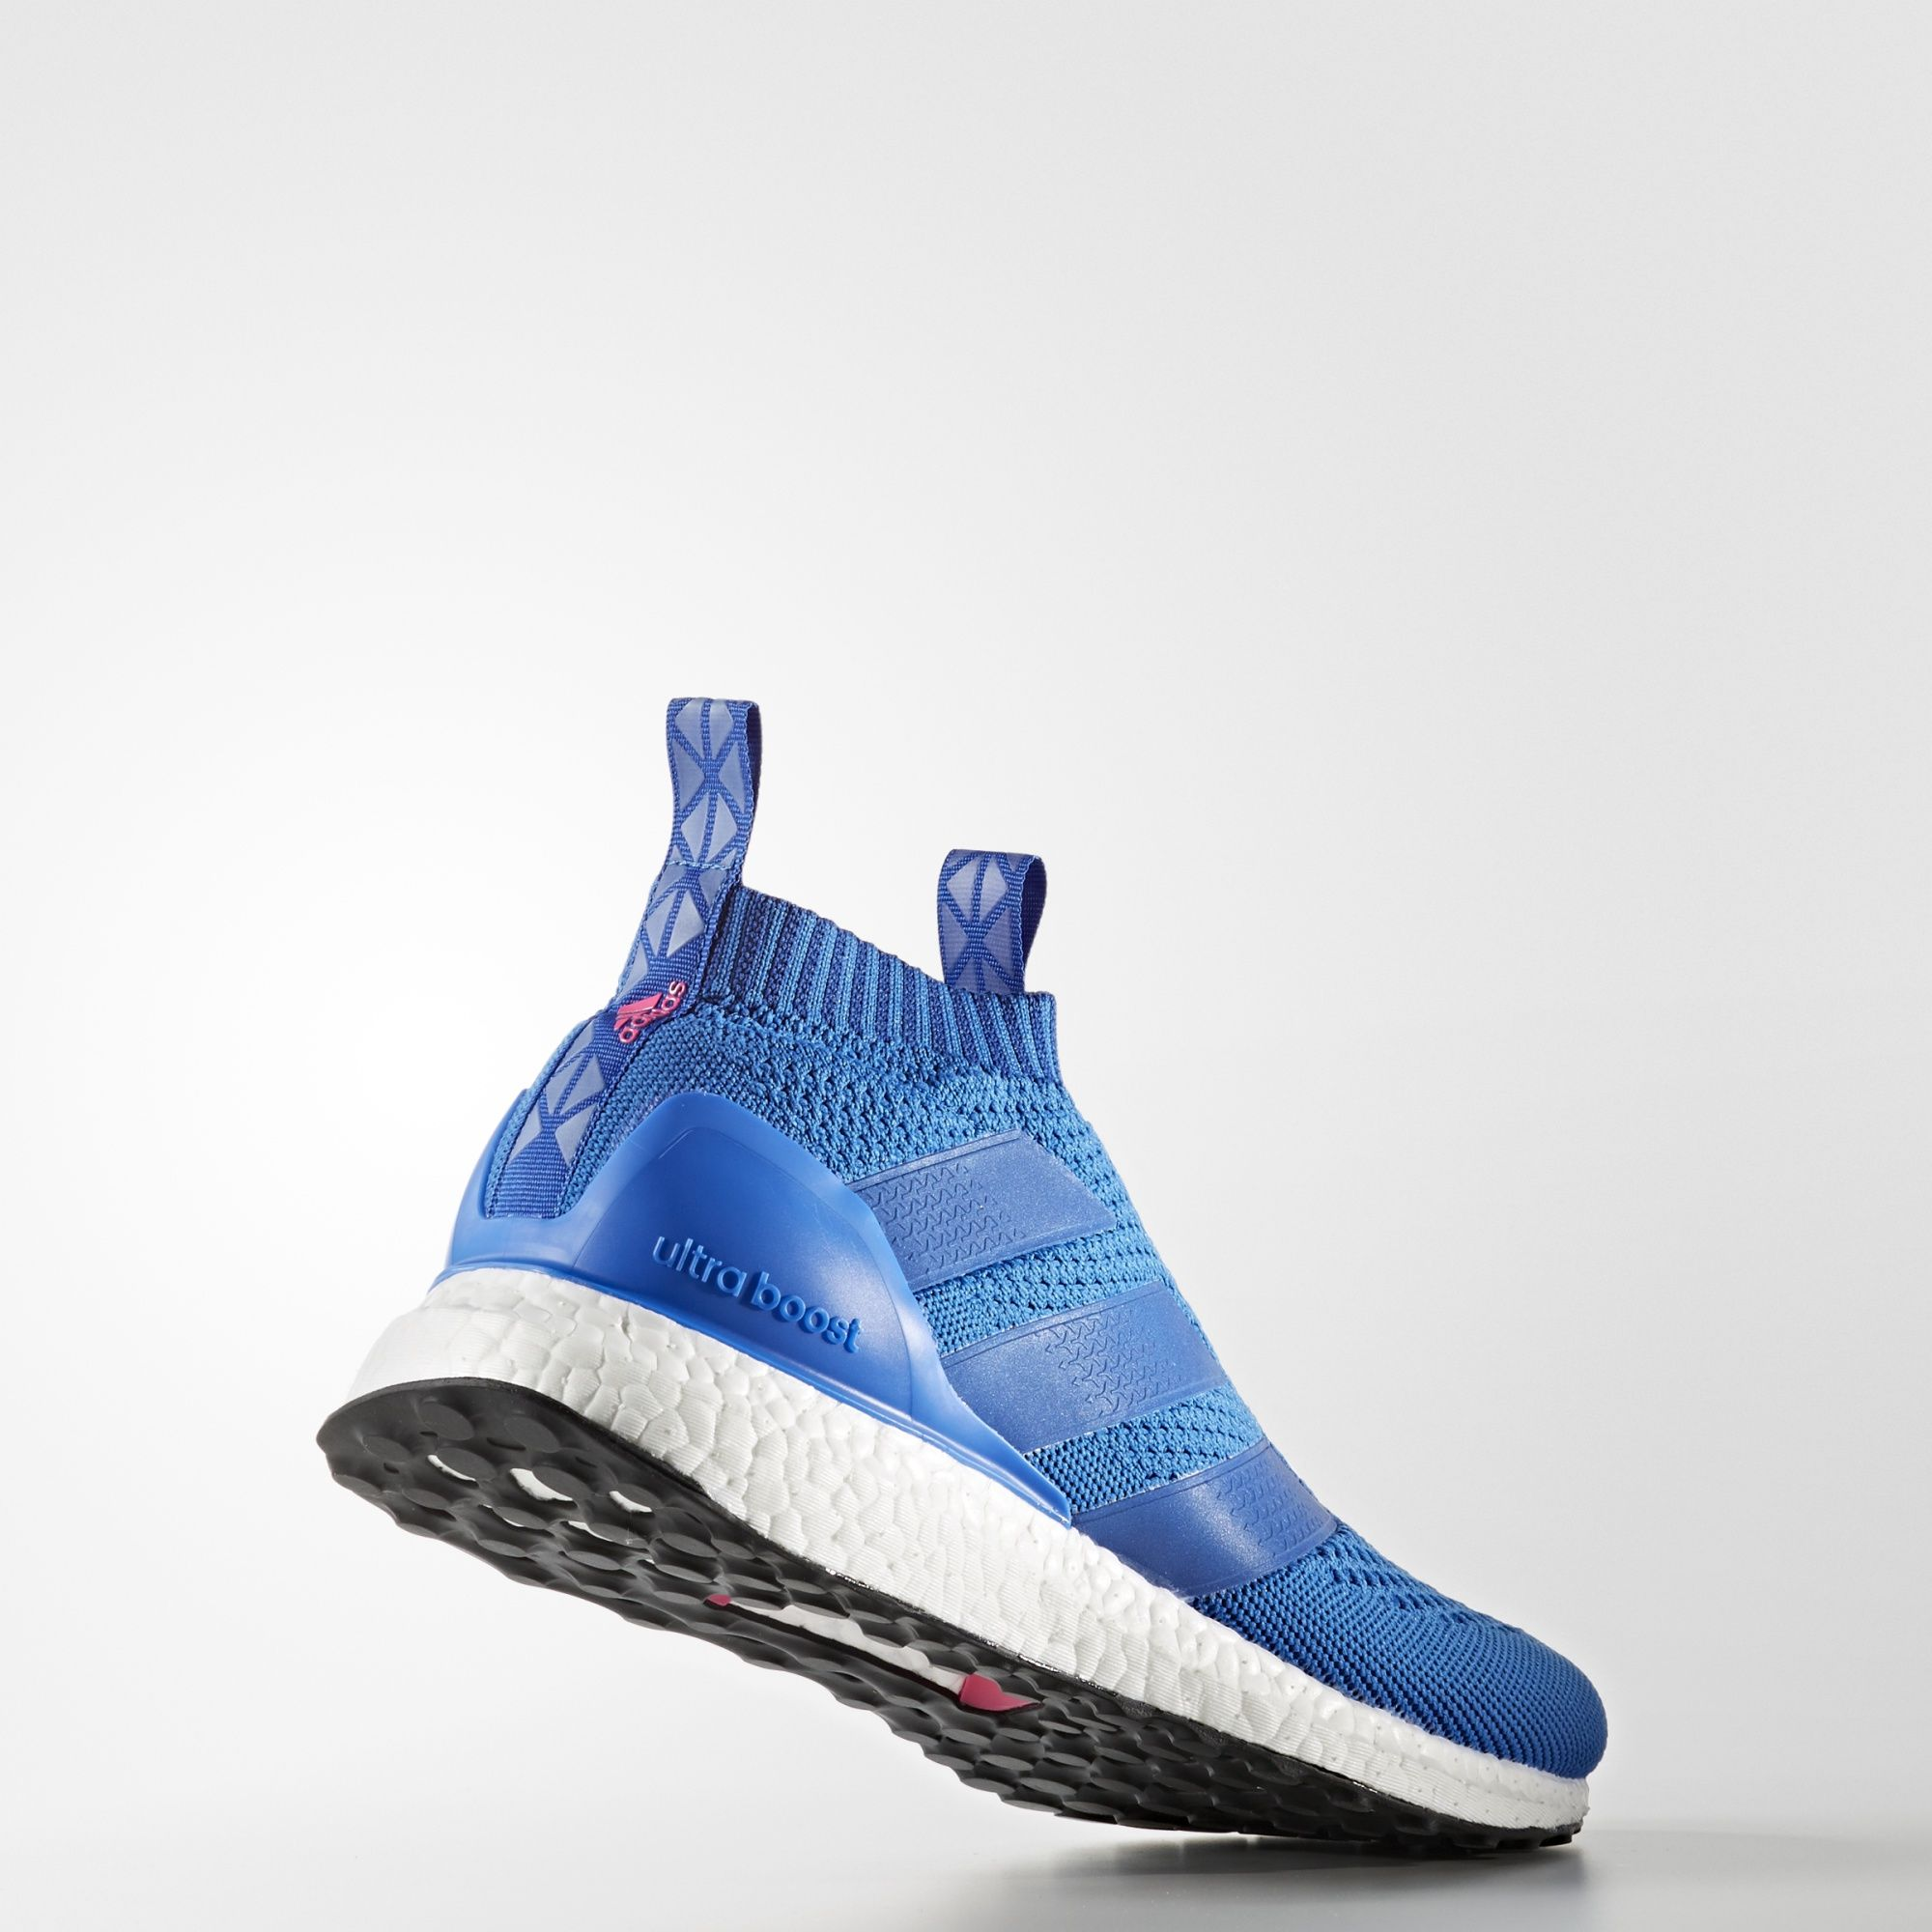 adidas ACE 16 Purecontrol Ultra Boost Blue BY9090 3